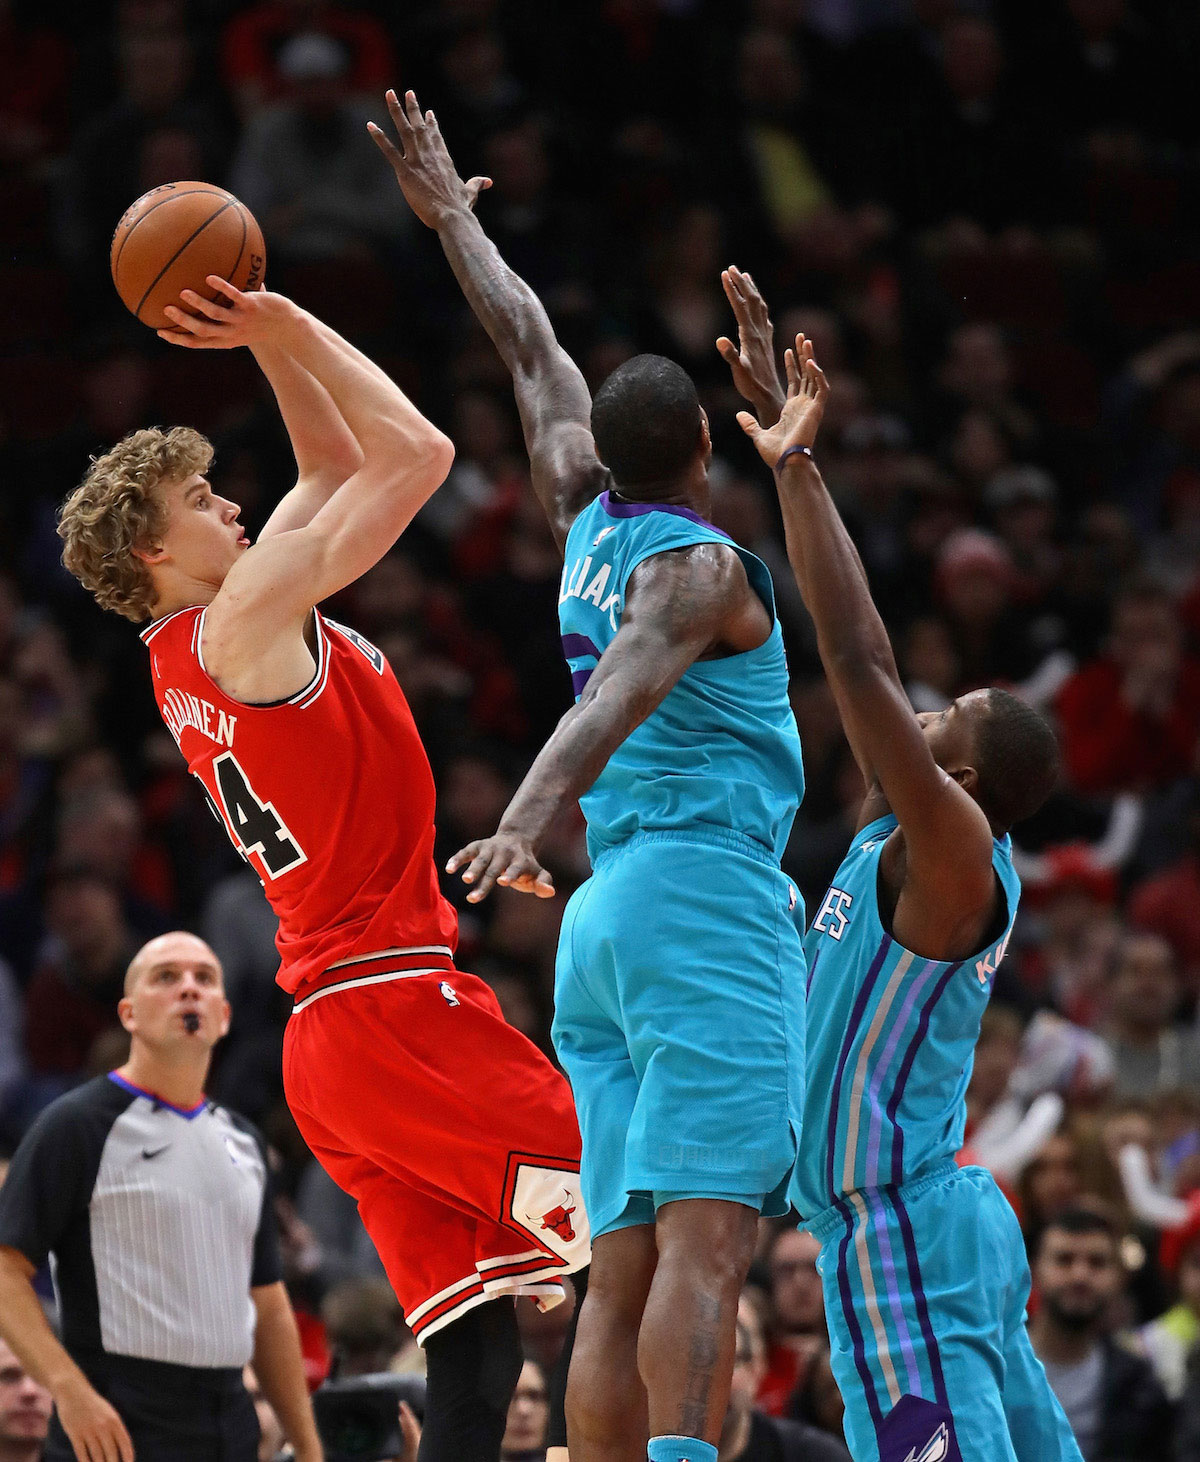 Lauri Markkanen #24 of the Chicago Bulls shoots over Michael Kidd-Gilchrist #14 (R) and Marvin Williams #2 of the Charlotte Hornets at the United Center on April 3, 2018